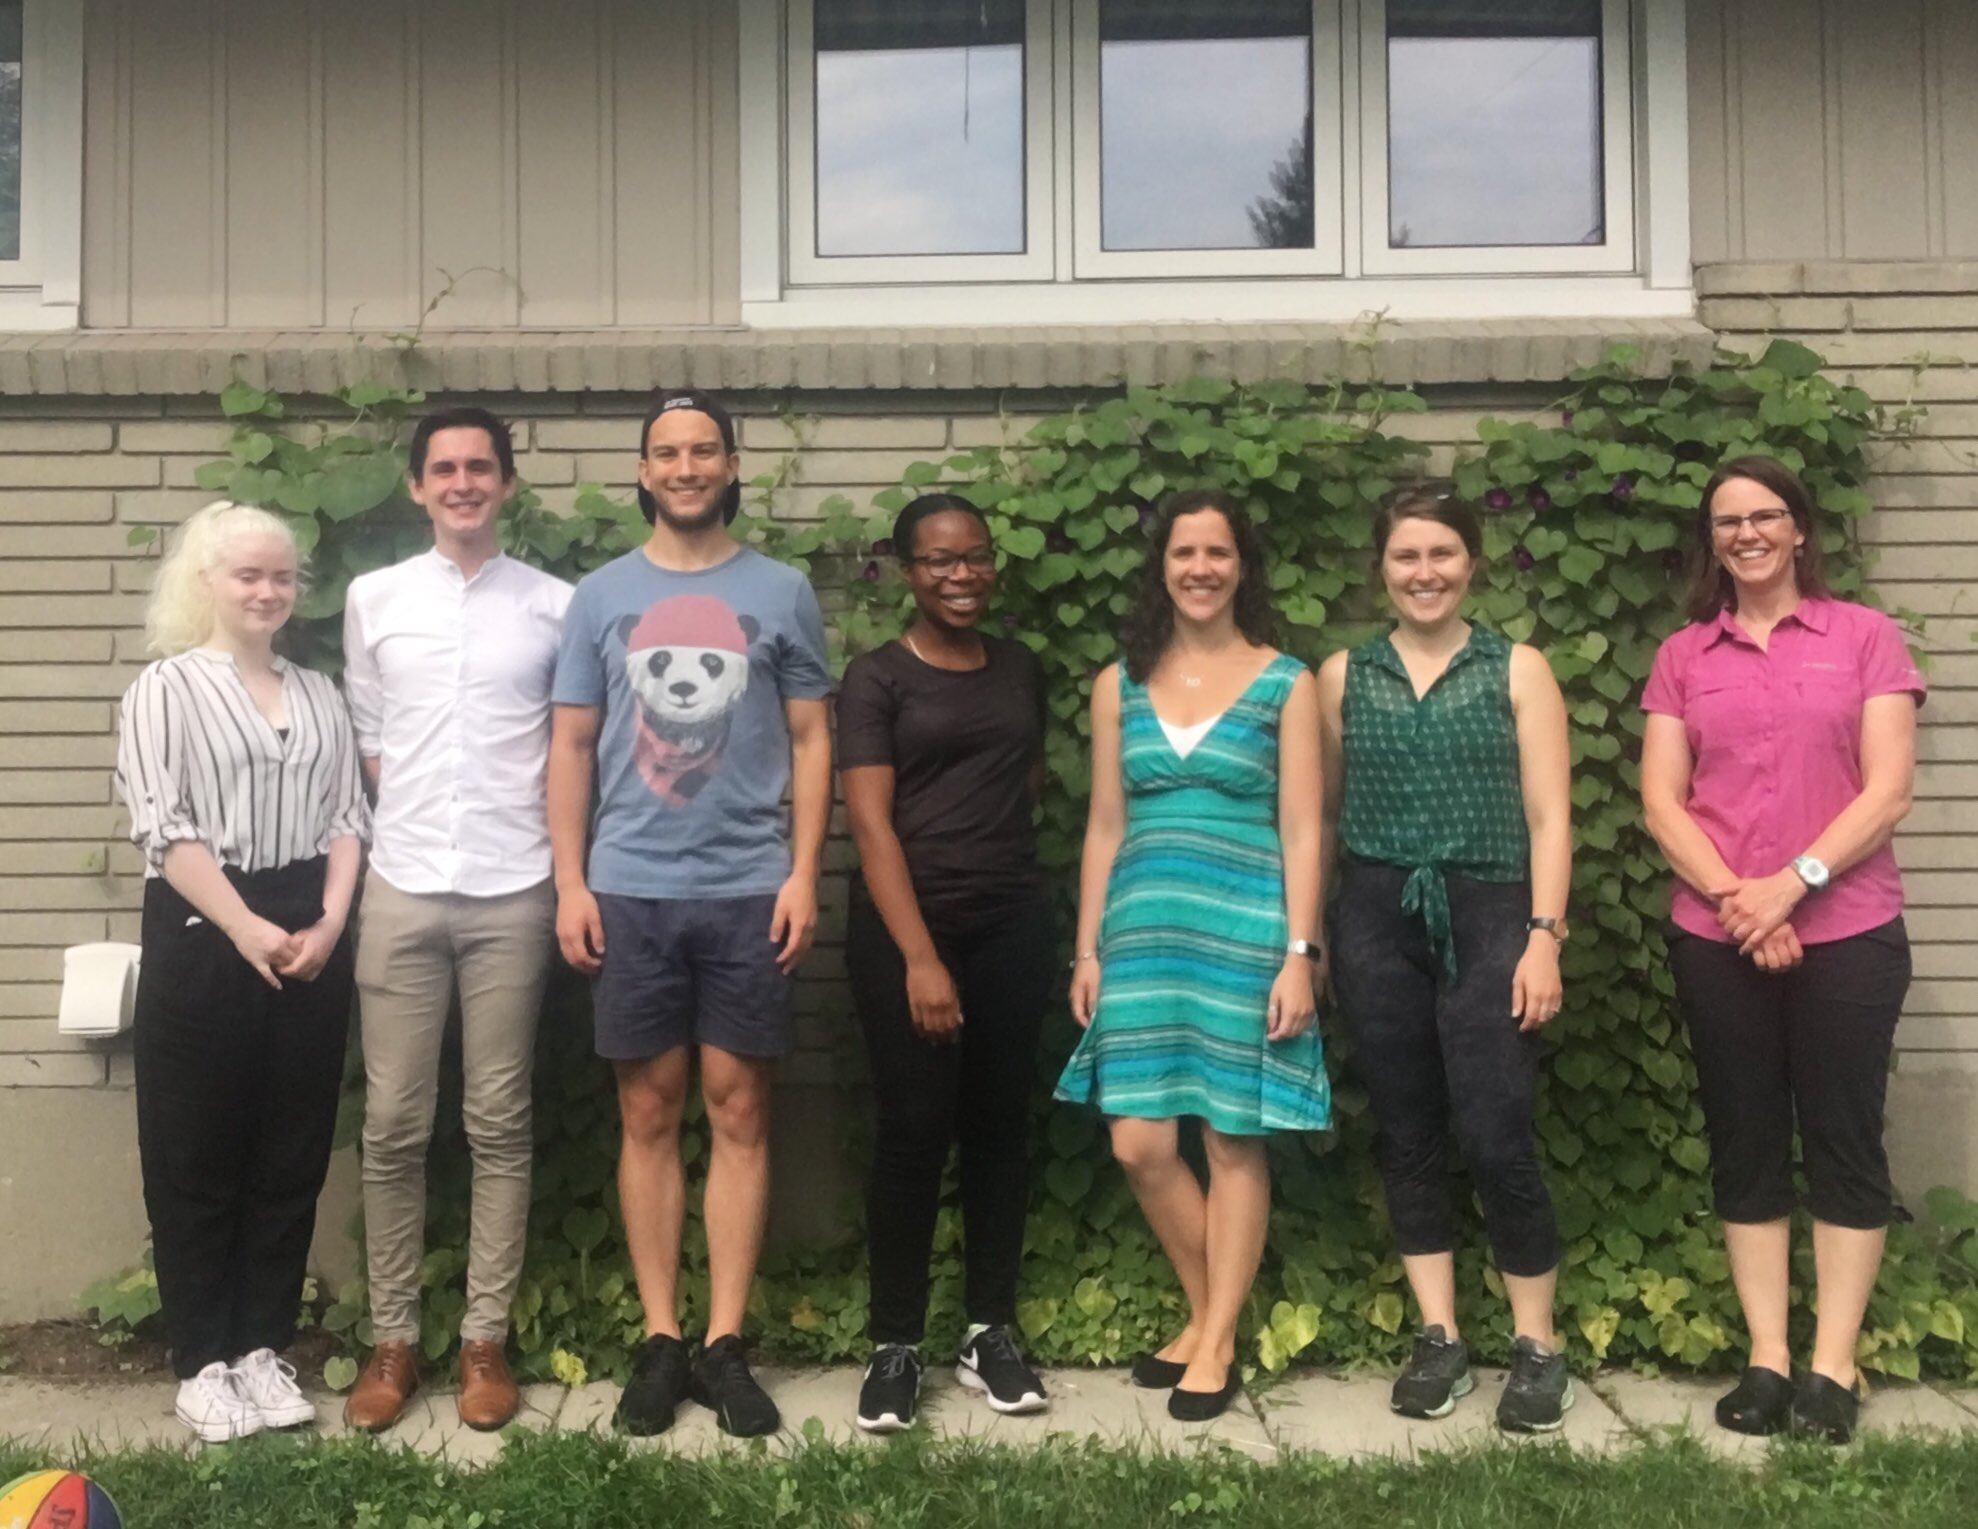 Group Retreat 2018! Left to right: Océanne, Keith, Nik, Berthorie, Myriam, Amanda, and Alison